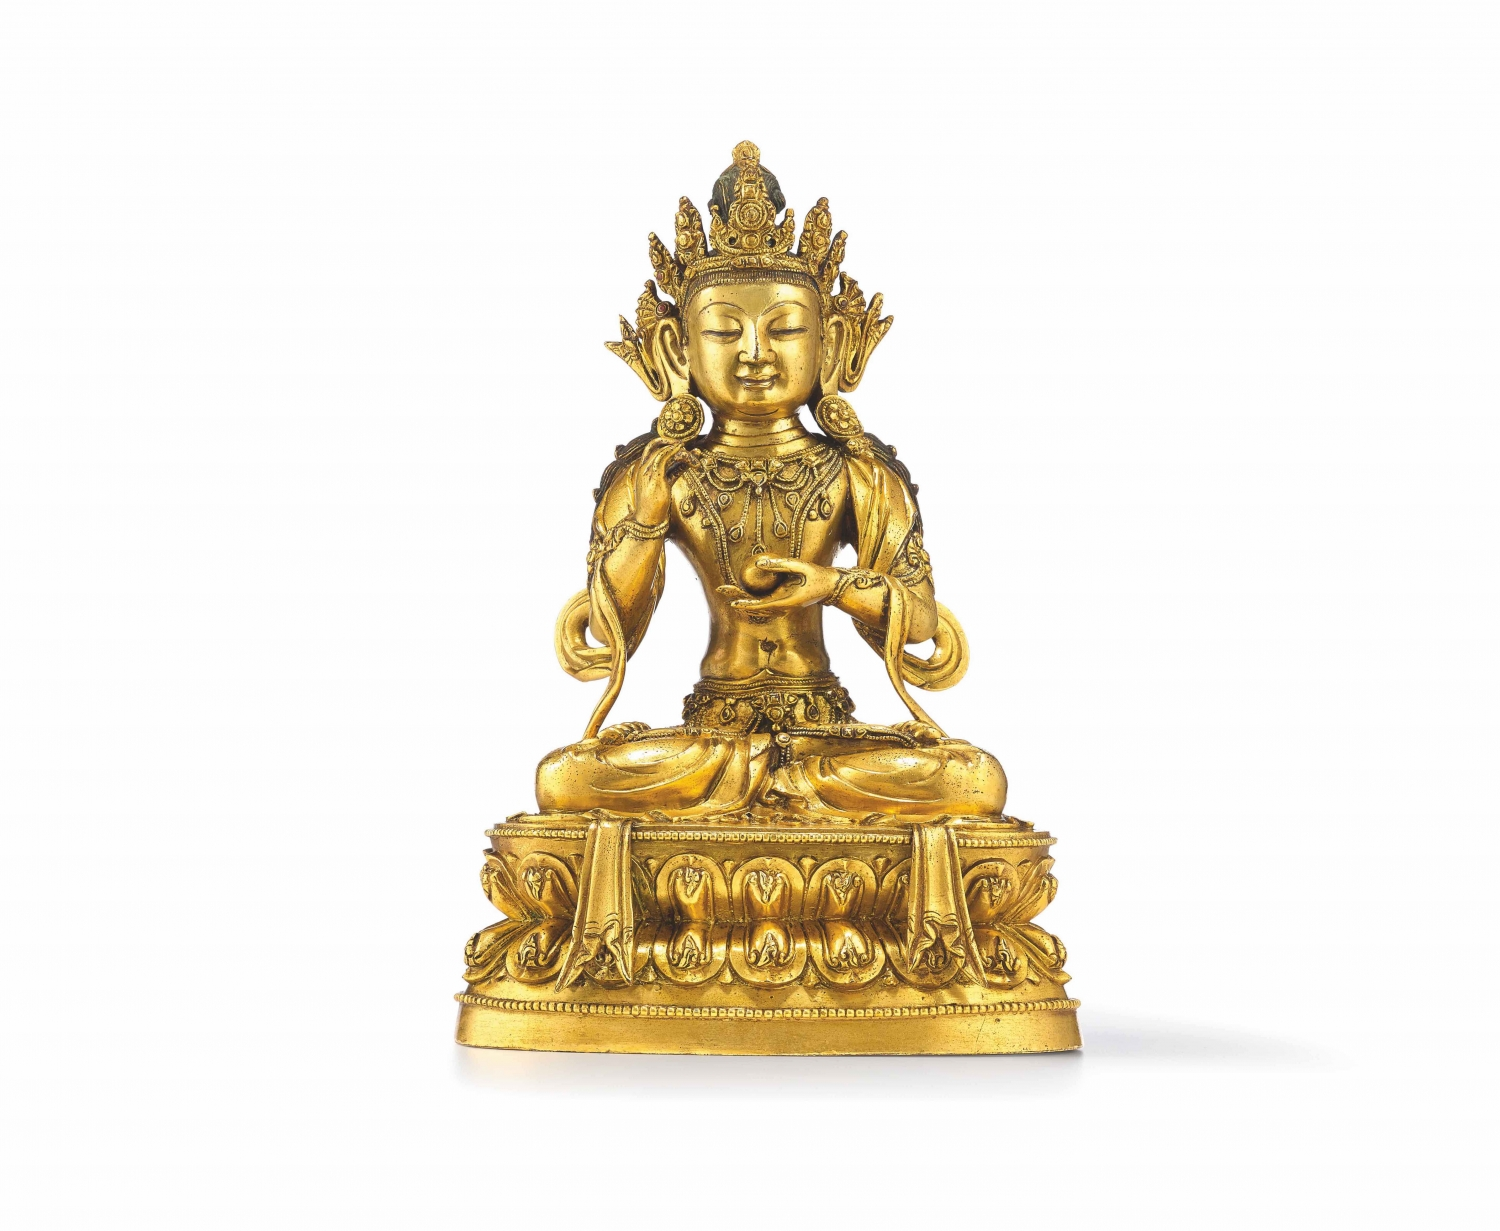 A gilt copper alloy seated figure of Avalokitesvara/Guanyin